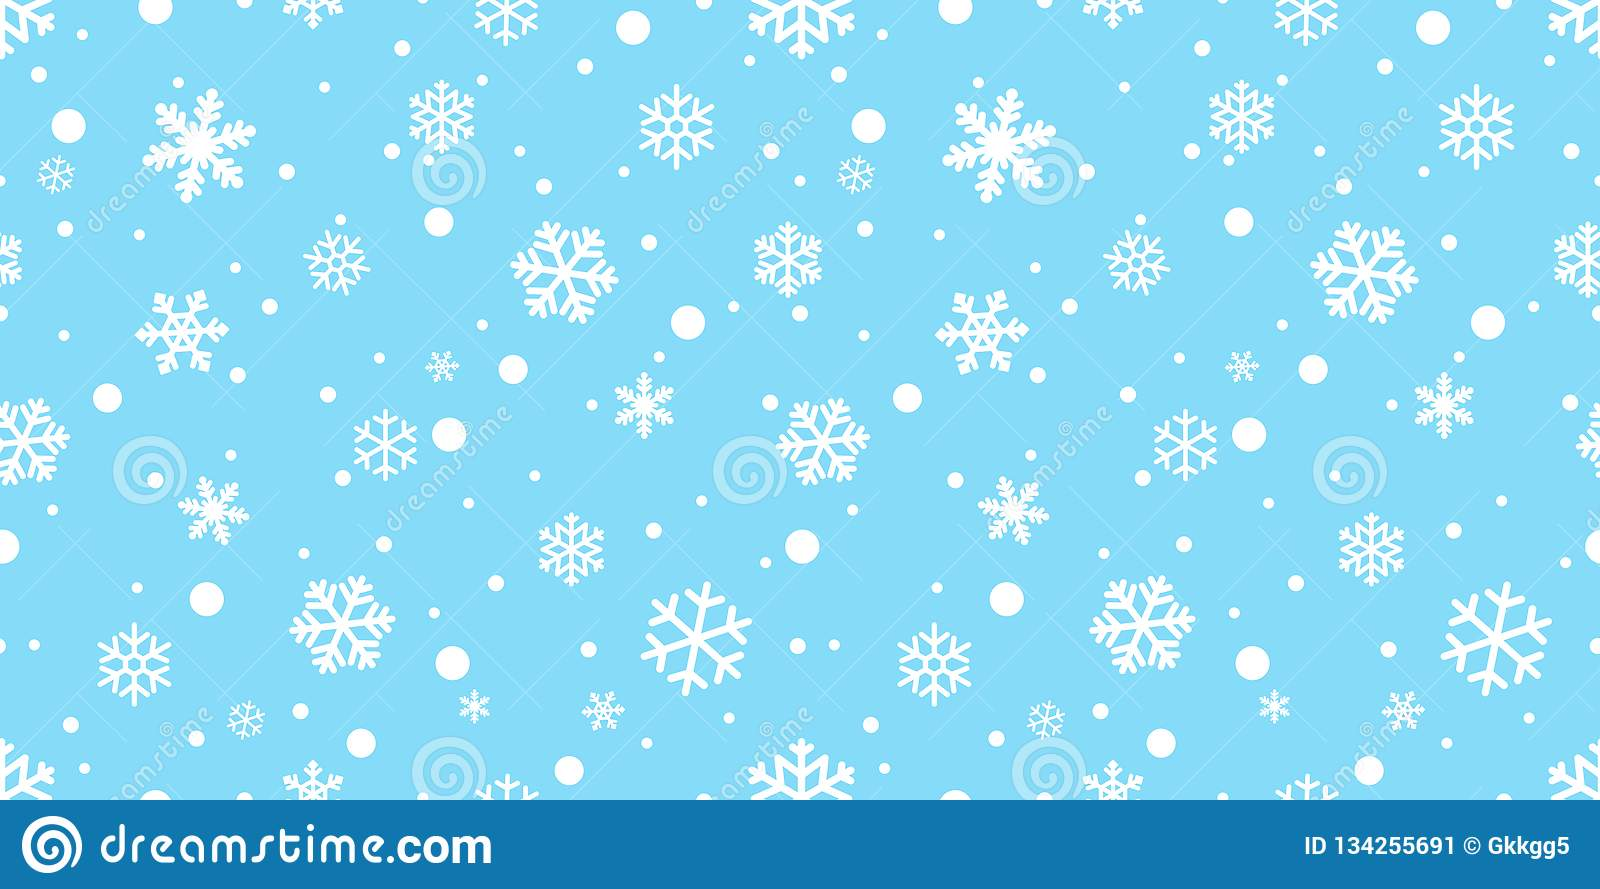 snowflake seamless pattern vector christmas snow xmas santa claus scarf isolated repeat wallpaper tile background illustration gif 134255691